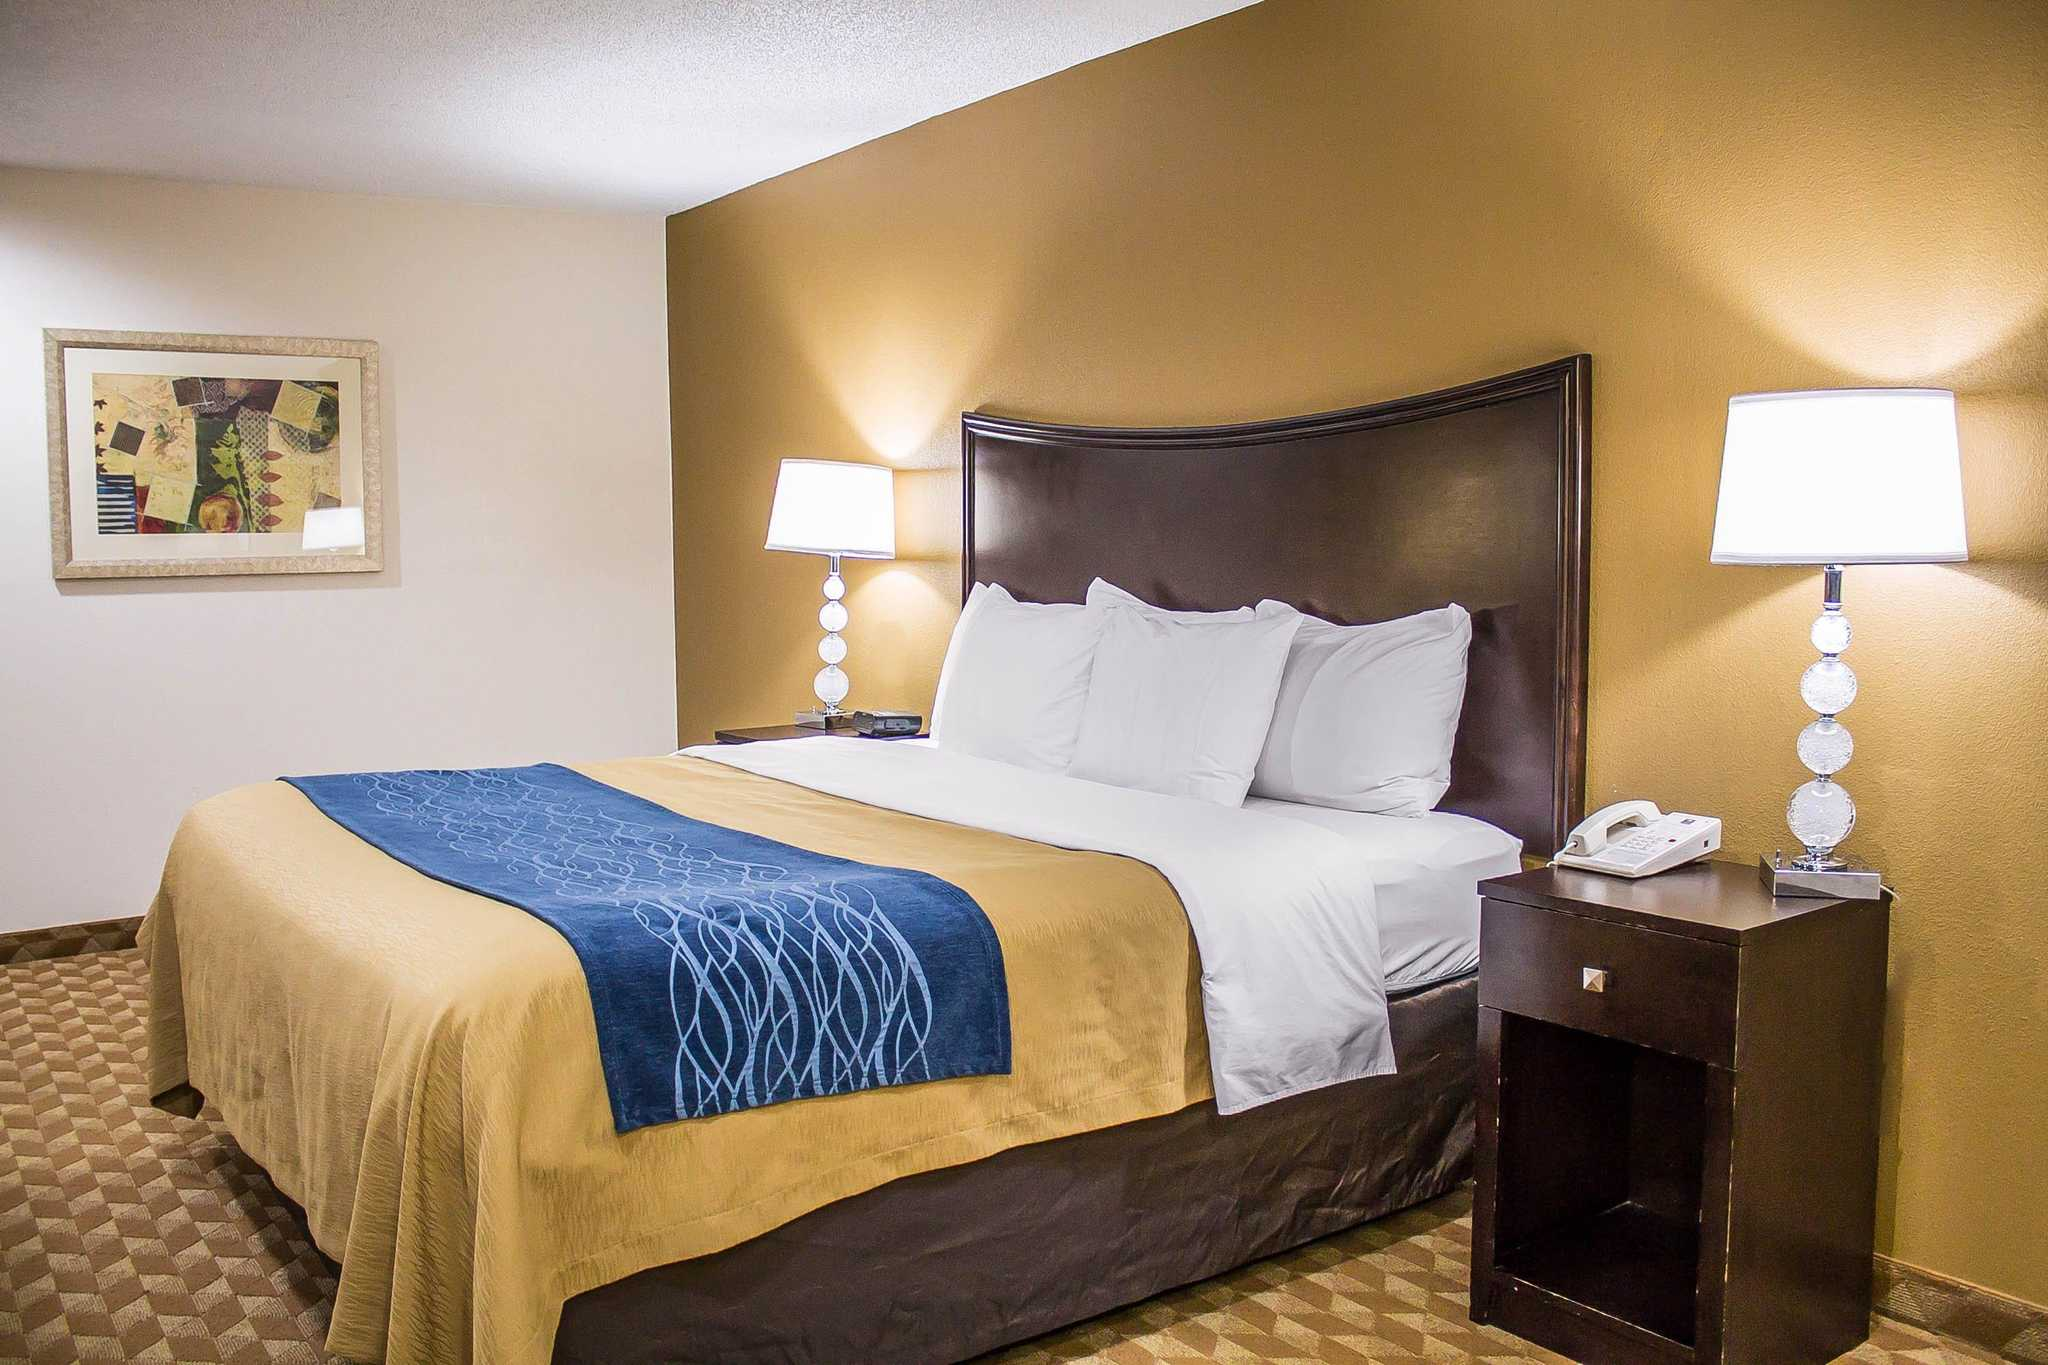 Comfort inn marysville ohio localdatabasecom for Comfort inn bedding